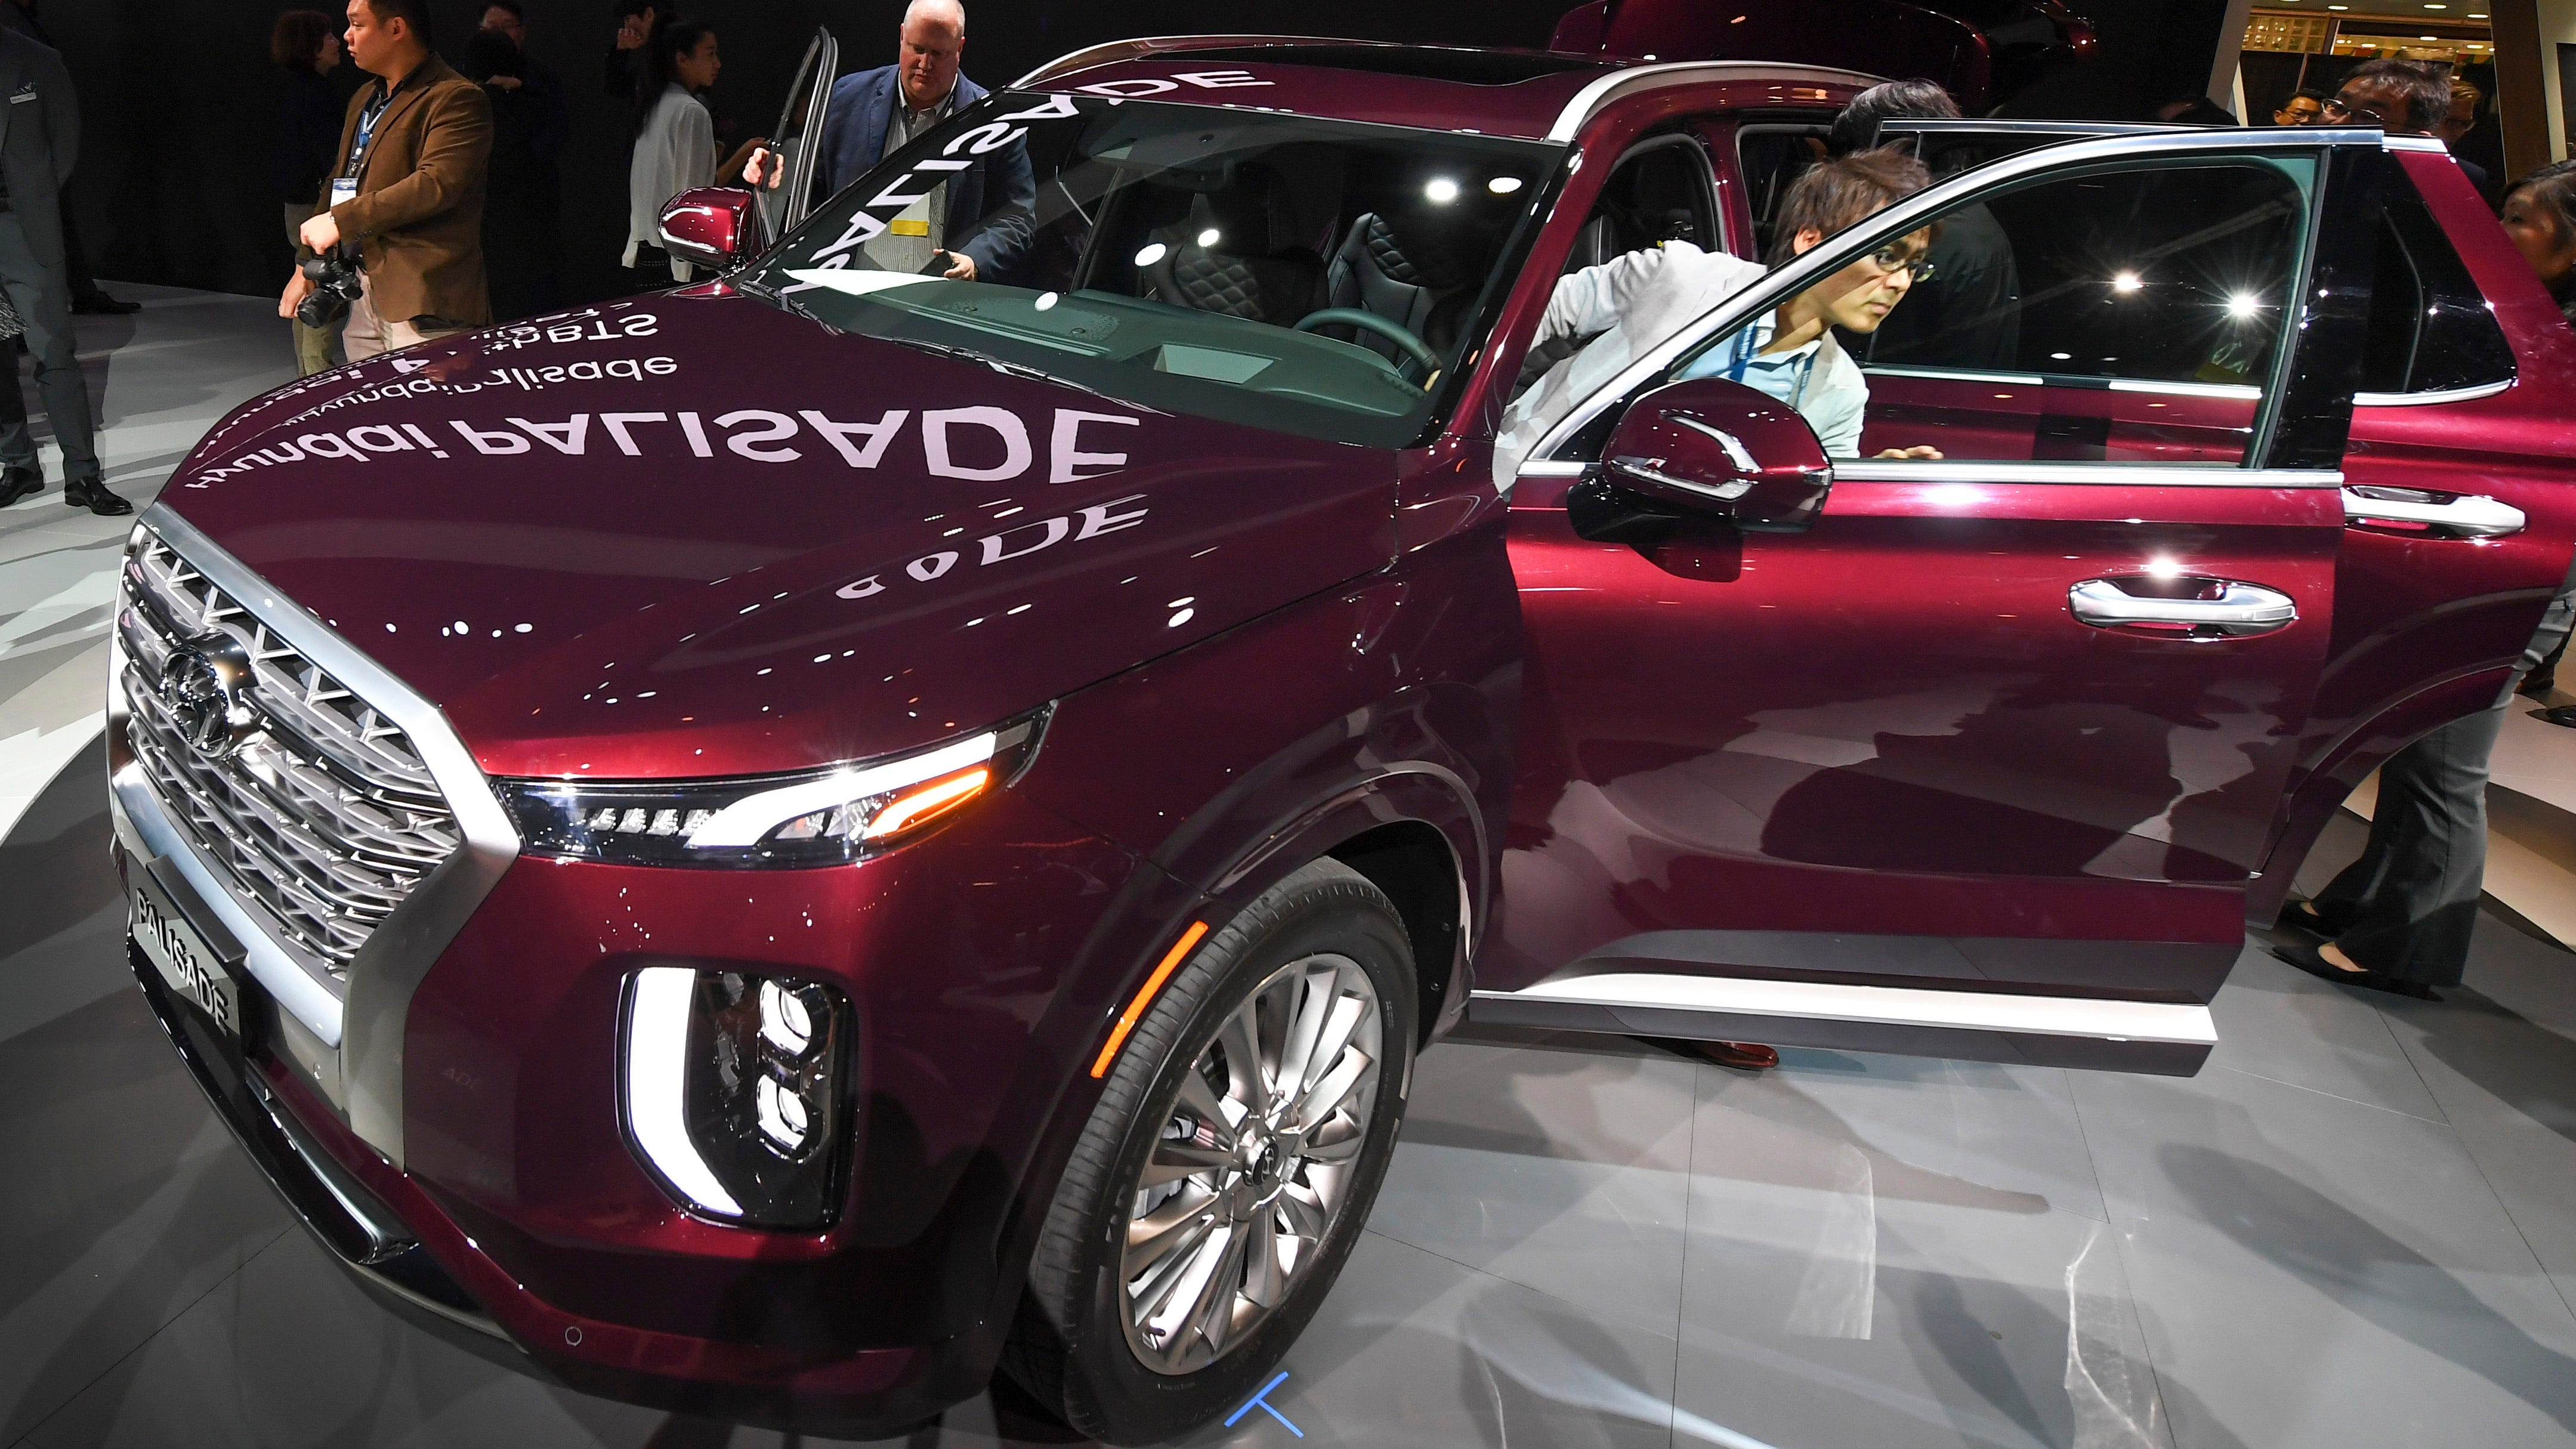 The Hyundai Palisade was unveiled during press preview day at Los Angeles Auto Show on Nov 28, 2018.